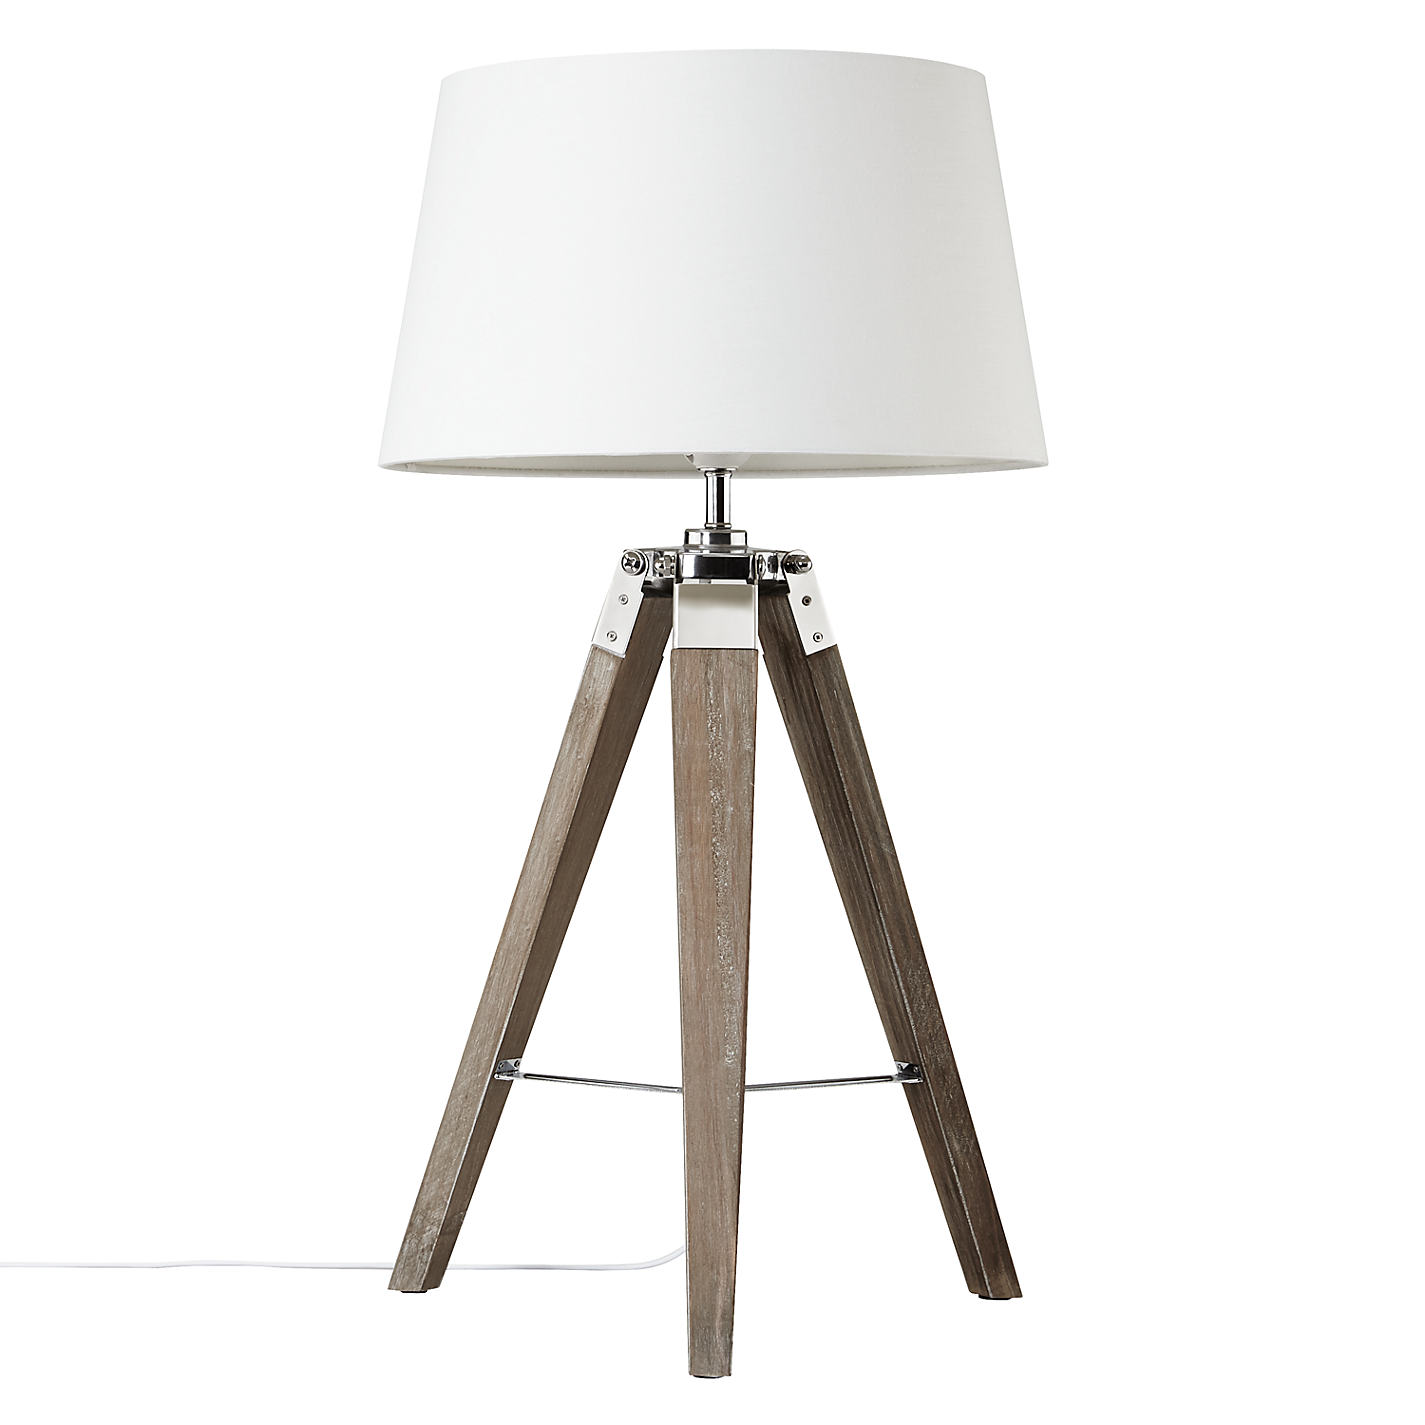 Buy john lewis jacques tripod table lamp john lewis buy john lewis jacques tripod table lamp online at johnlewis mozeypictures Image collections